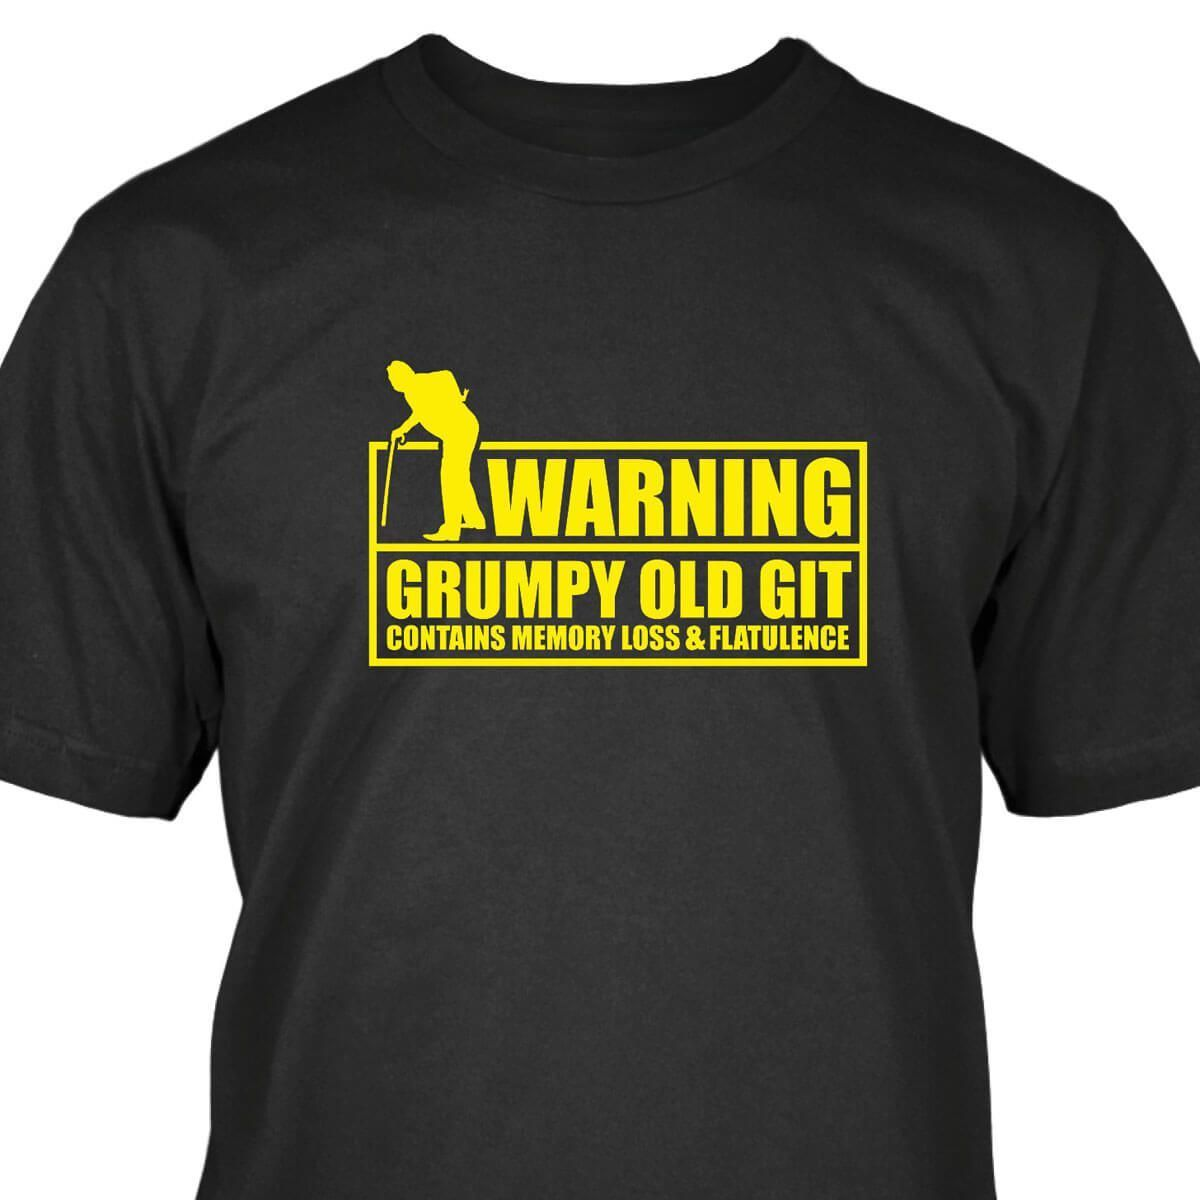 Warning, Grumpy Old Git T-Shirt ...